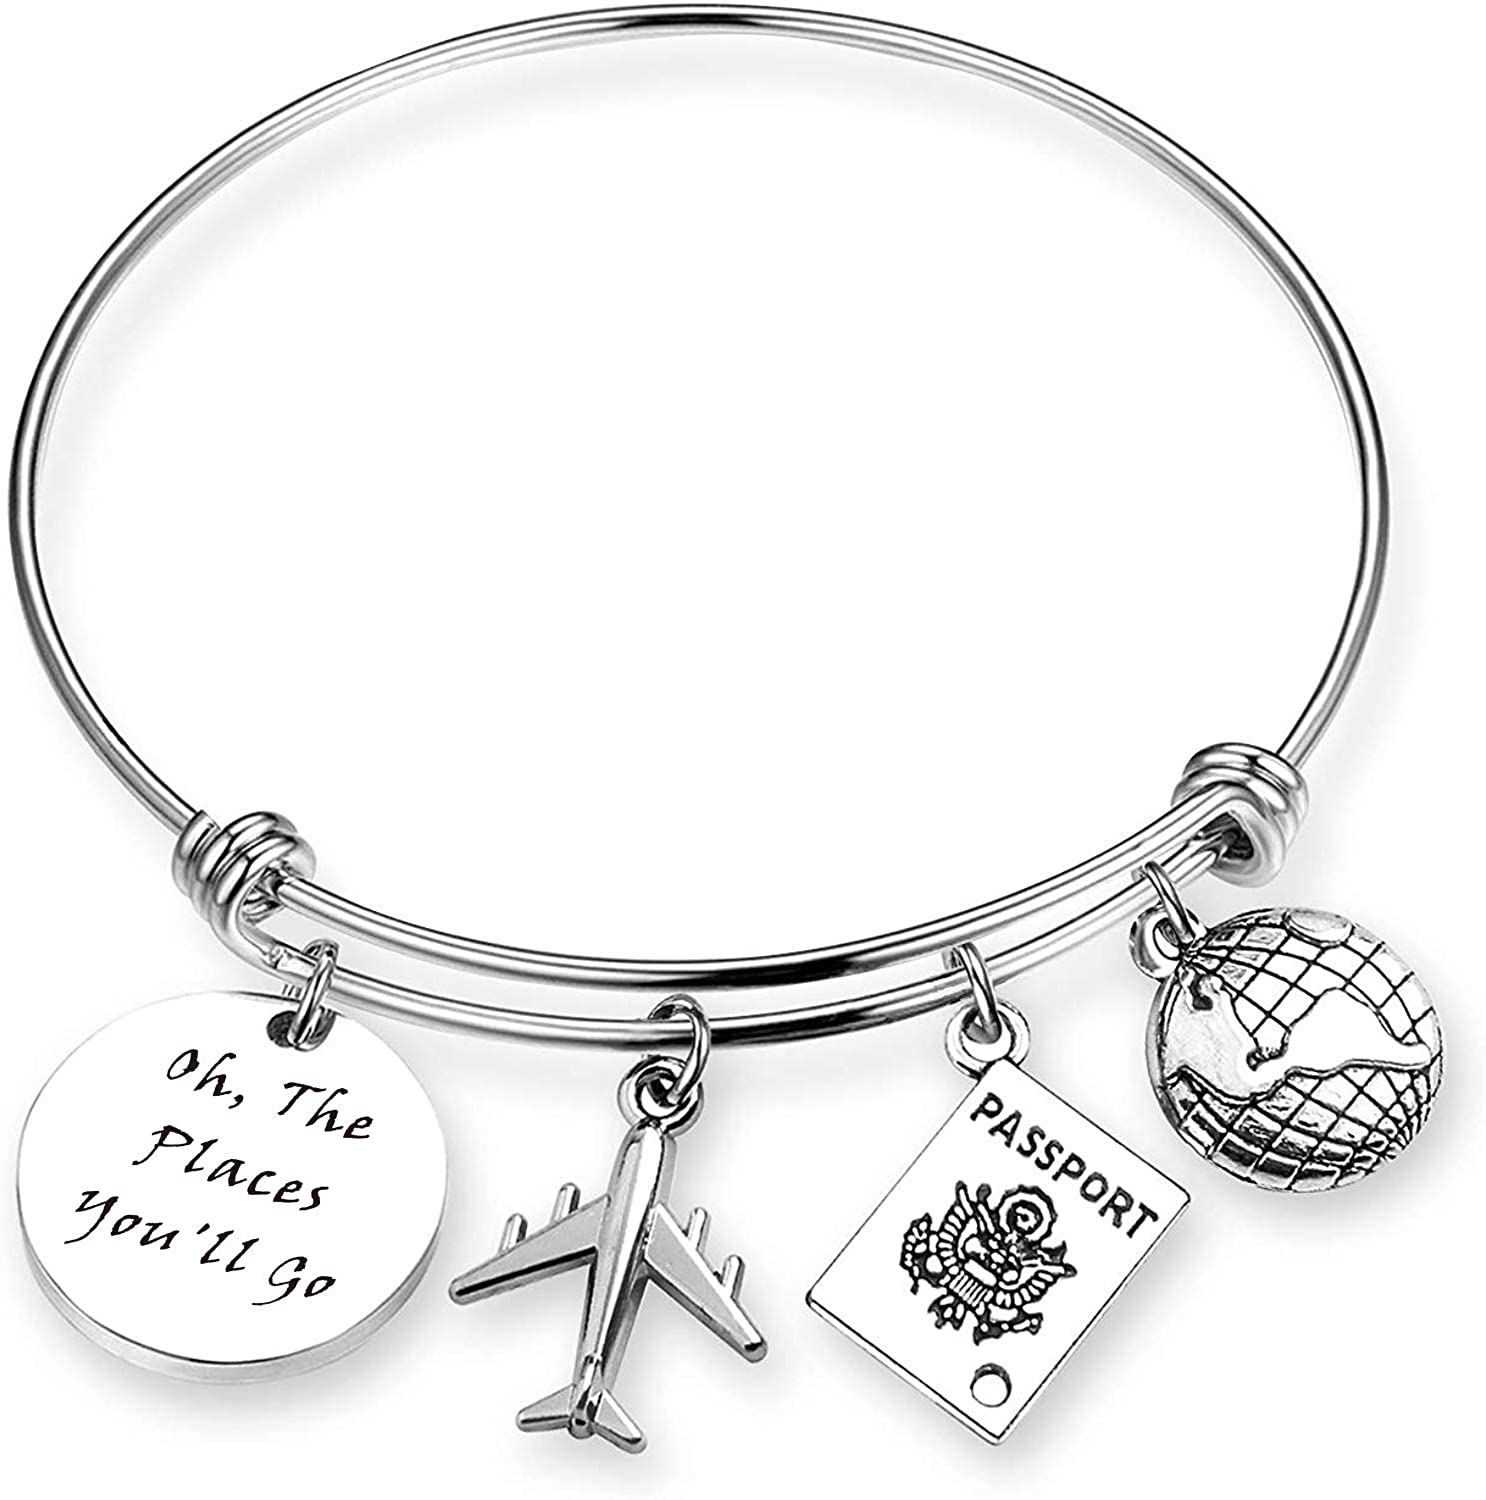 Travel Bracelet Graduation Gift Inspiration Jewelry Oh The Places You Will Go Traveler Bangle Charm Bracelets Gift for Travel, Graduation